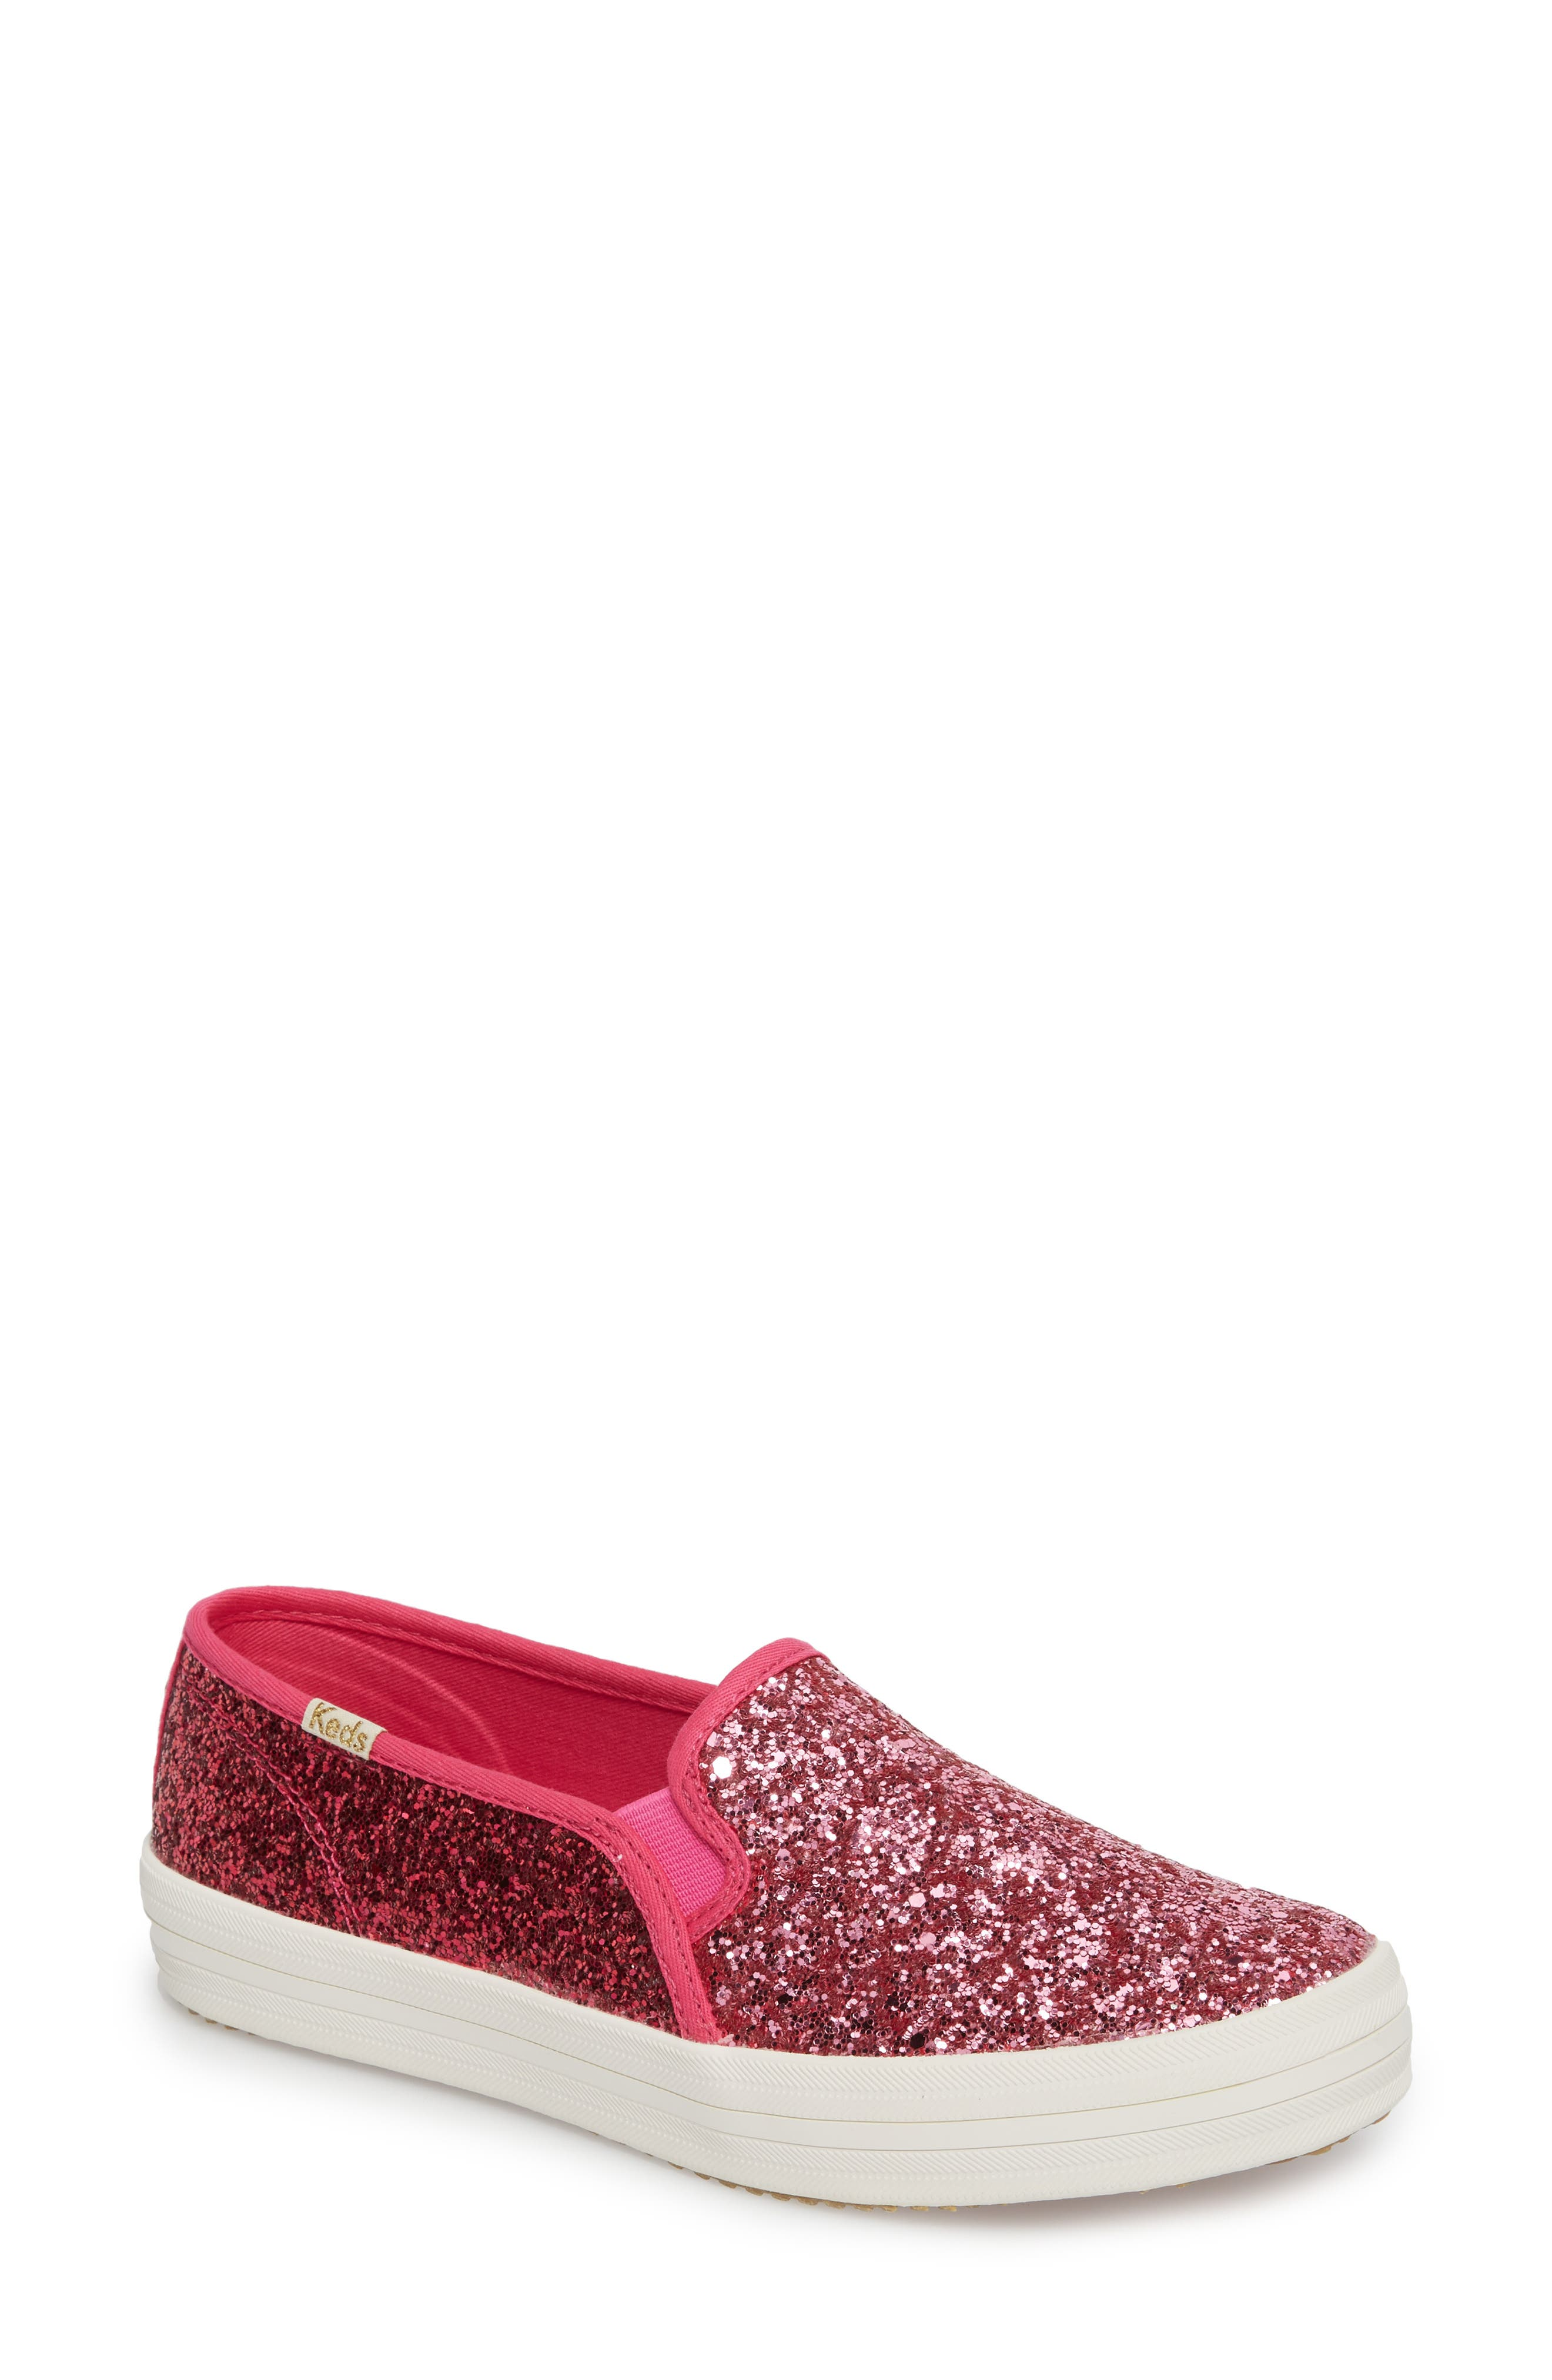 Keds® for kate spade new york double decker glitter slip-on sneaker (Women)